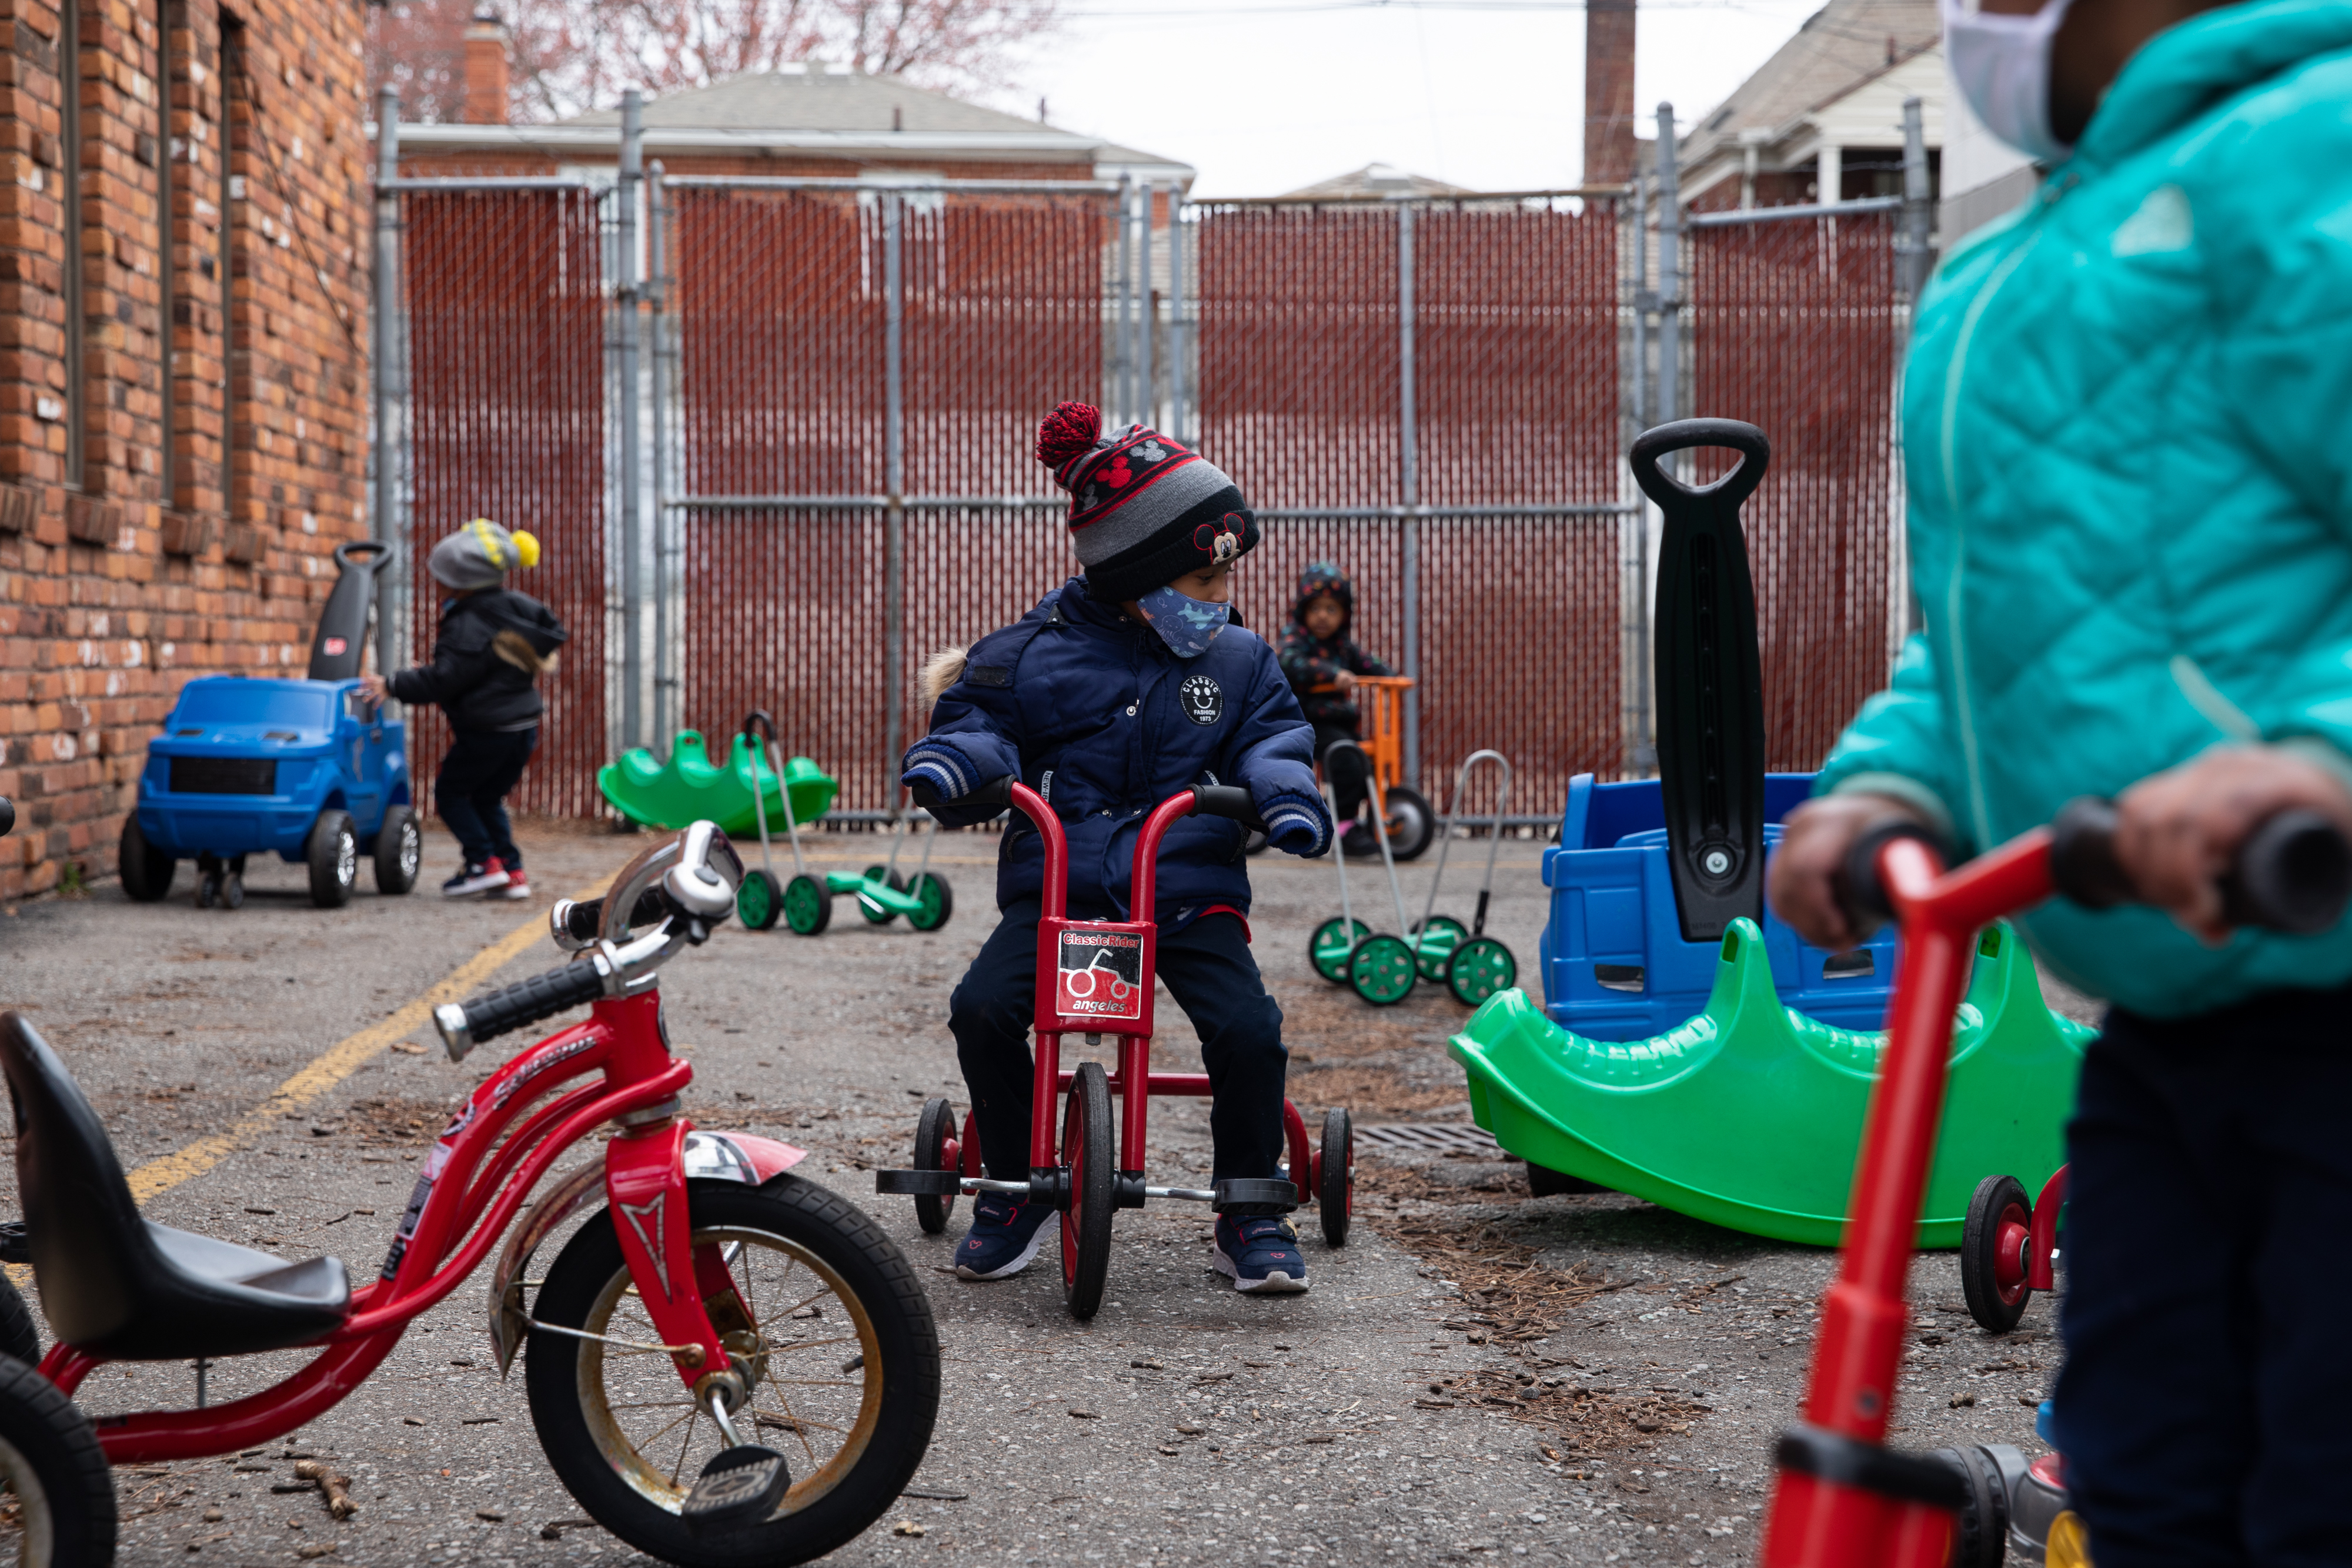 Preschoolers ride around on scooters outside at Little Scholars child care center in Detroit, Michigan, U.S., on Thursday April 1, 2021.